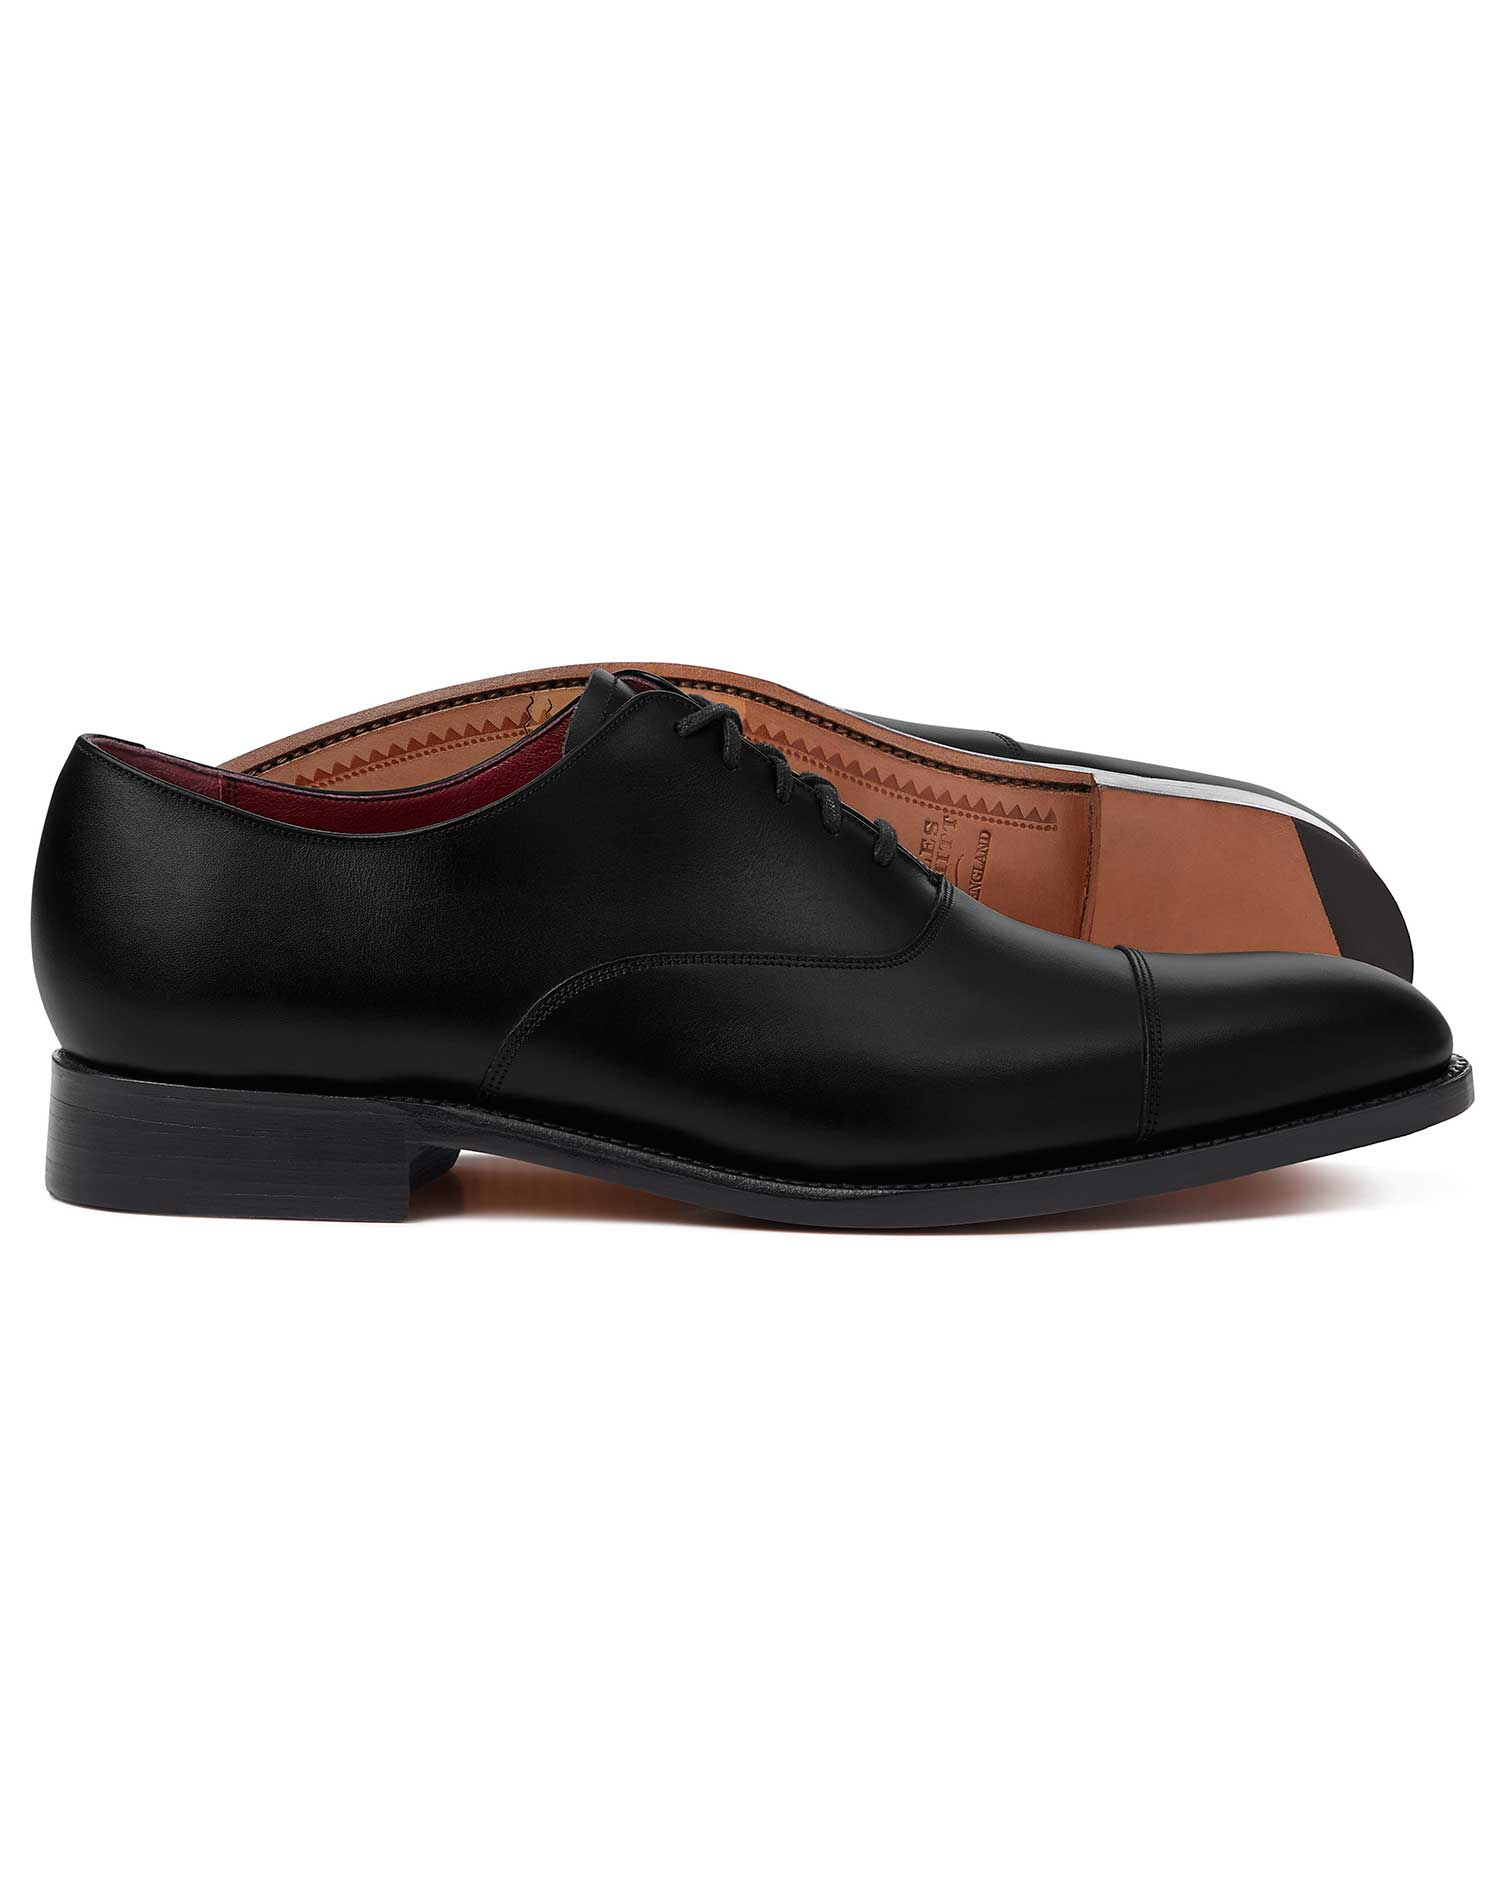 Black Made In England Oxford Flex Sole Shoe Size 10.5 W by Charles Tyrwhitt